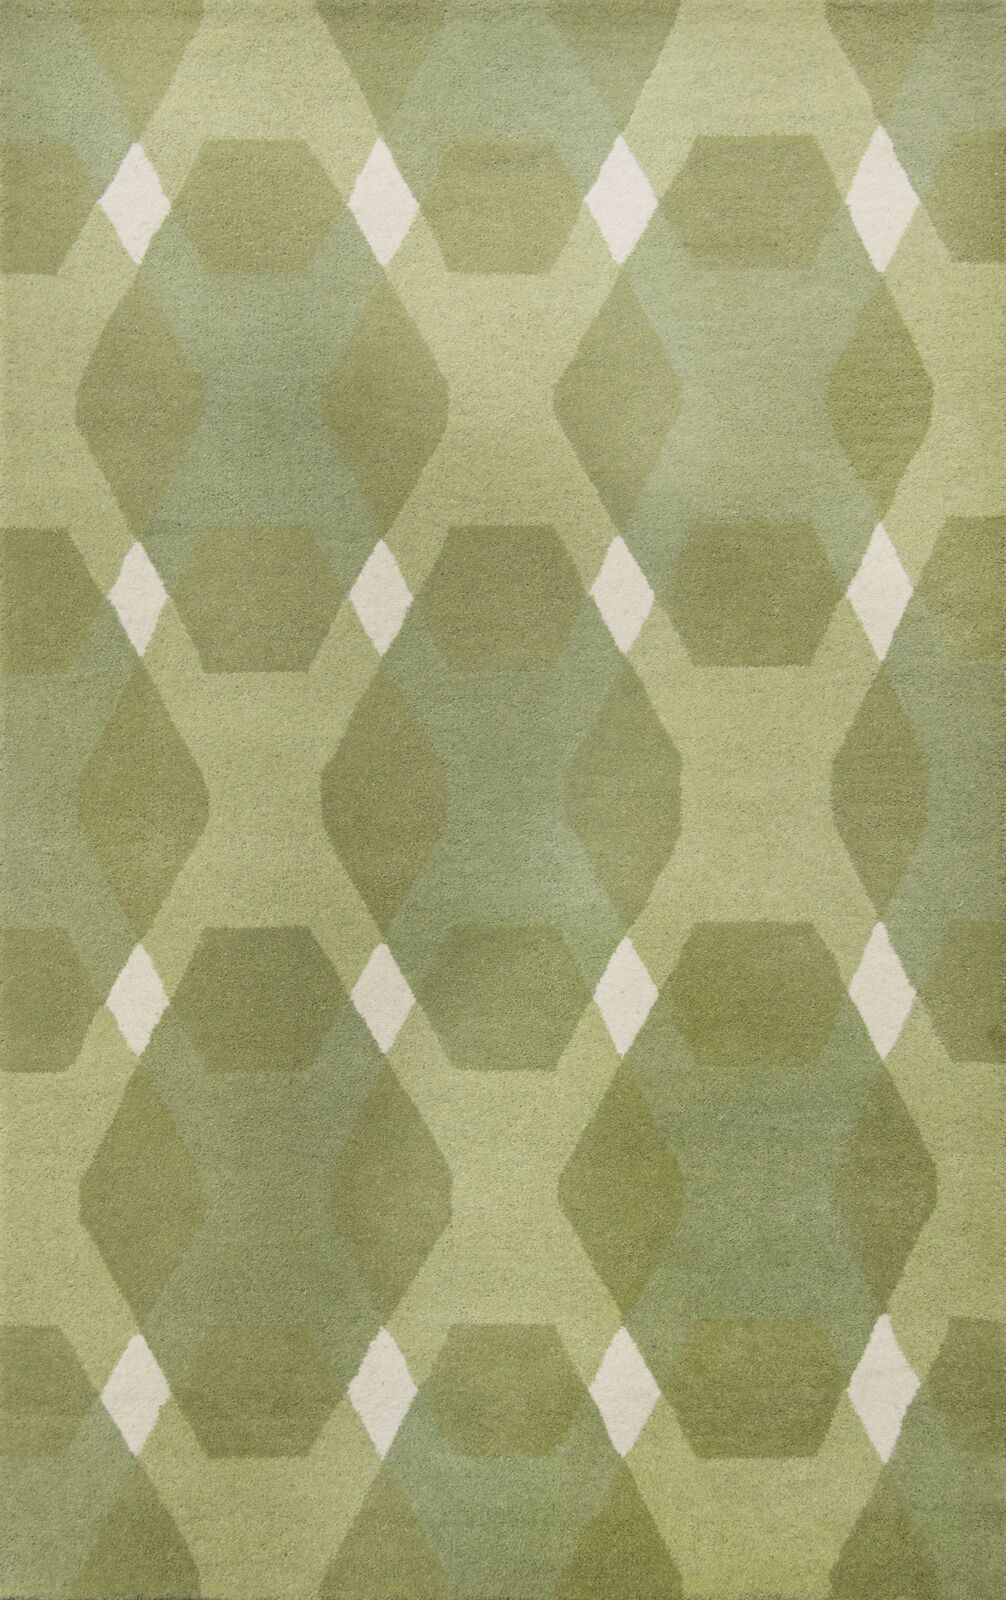 Diamond Hand-Loomed Green/White Area Rug Rug Size: Rectangle 4' x 6'